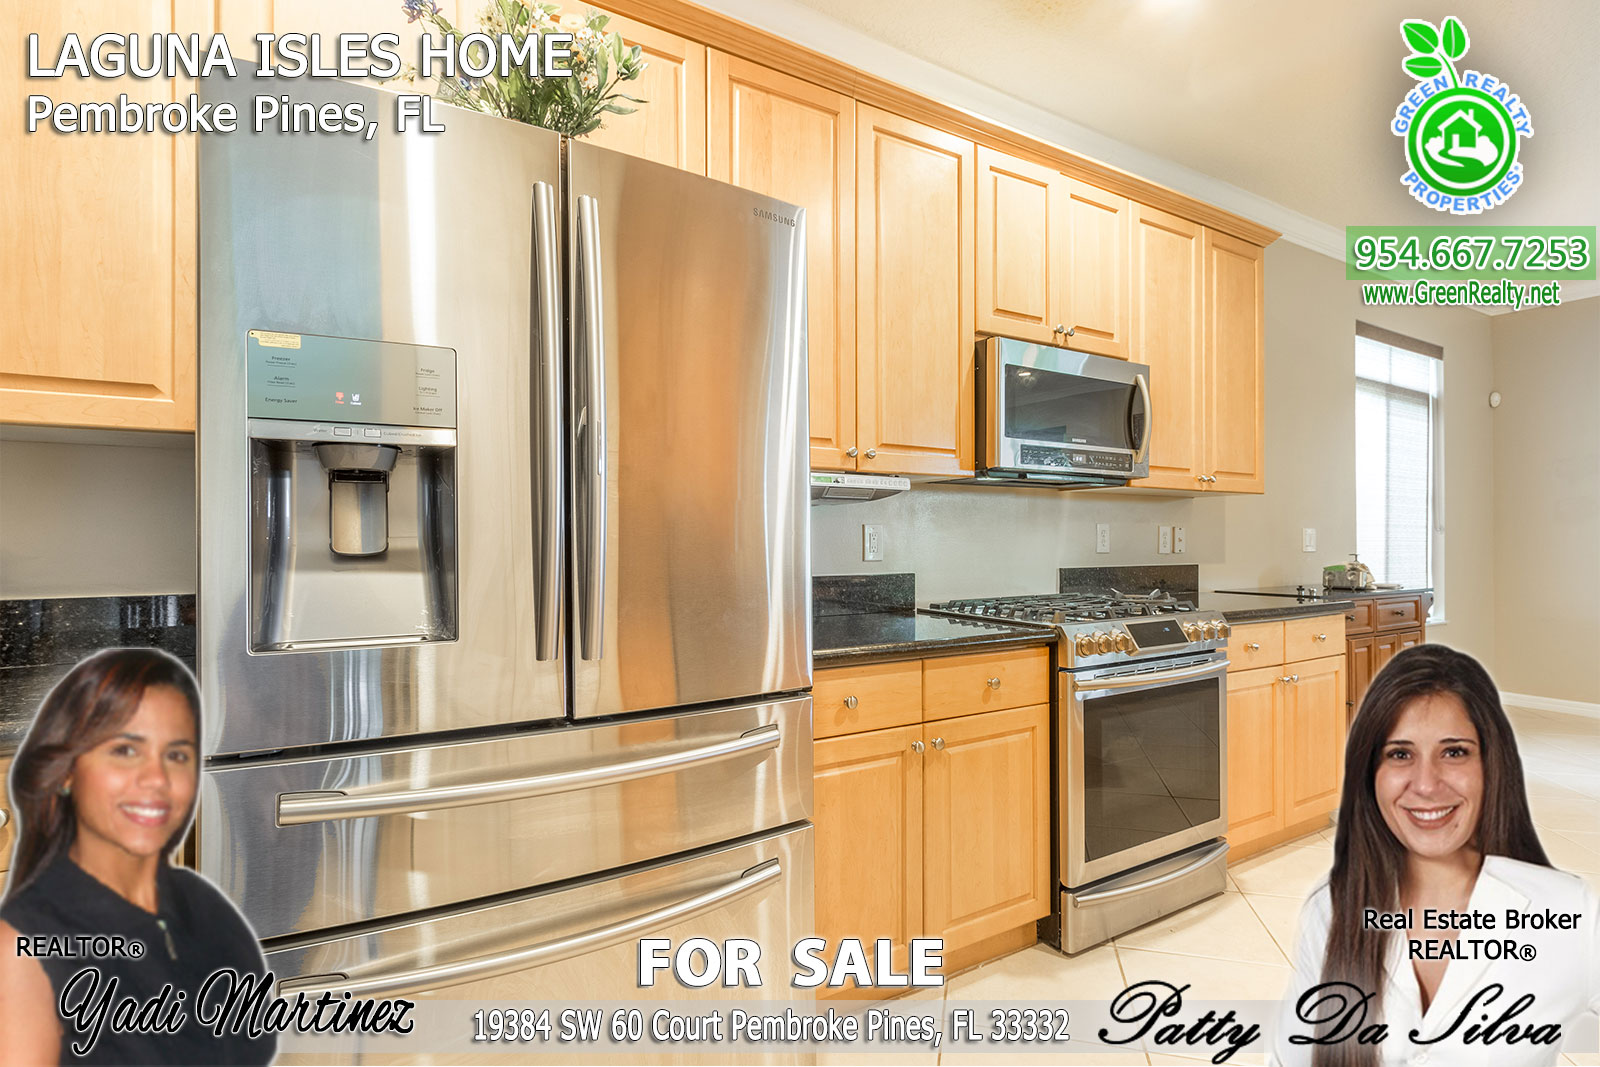 Pembroke-pines-laguna-isles-home-for-sale-by-green-realty-properties-10